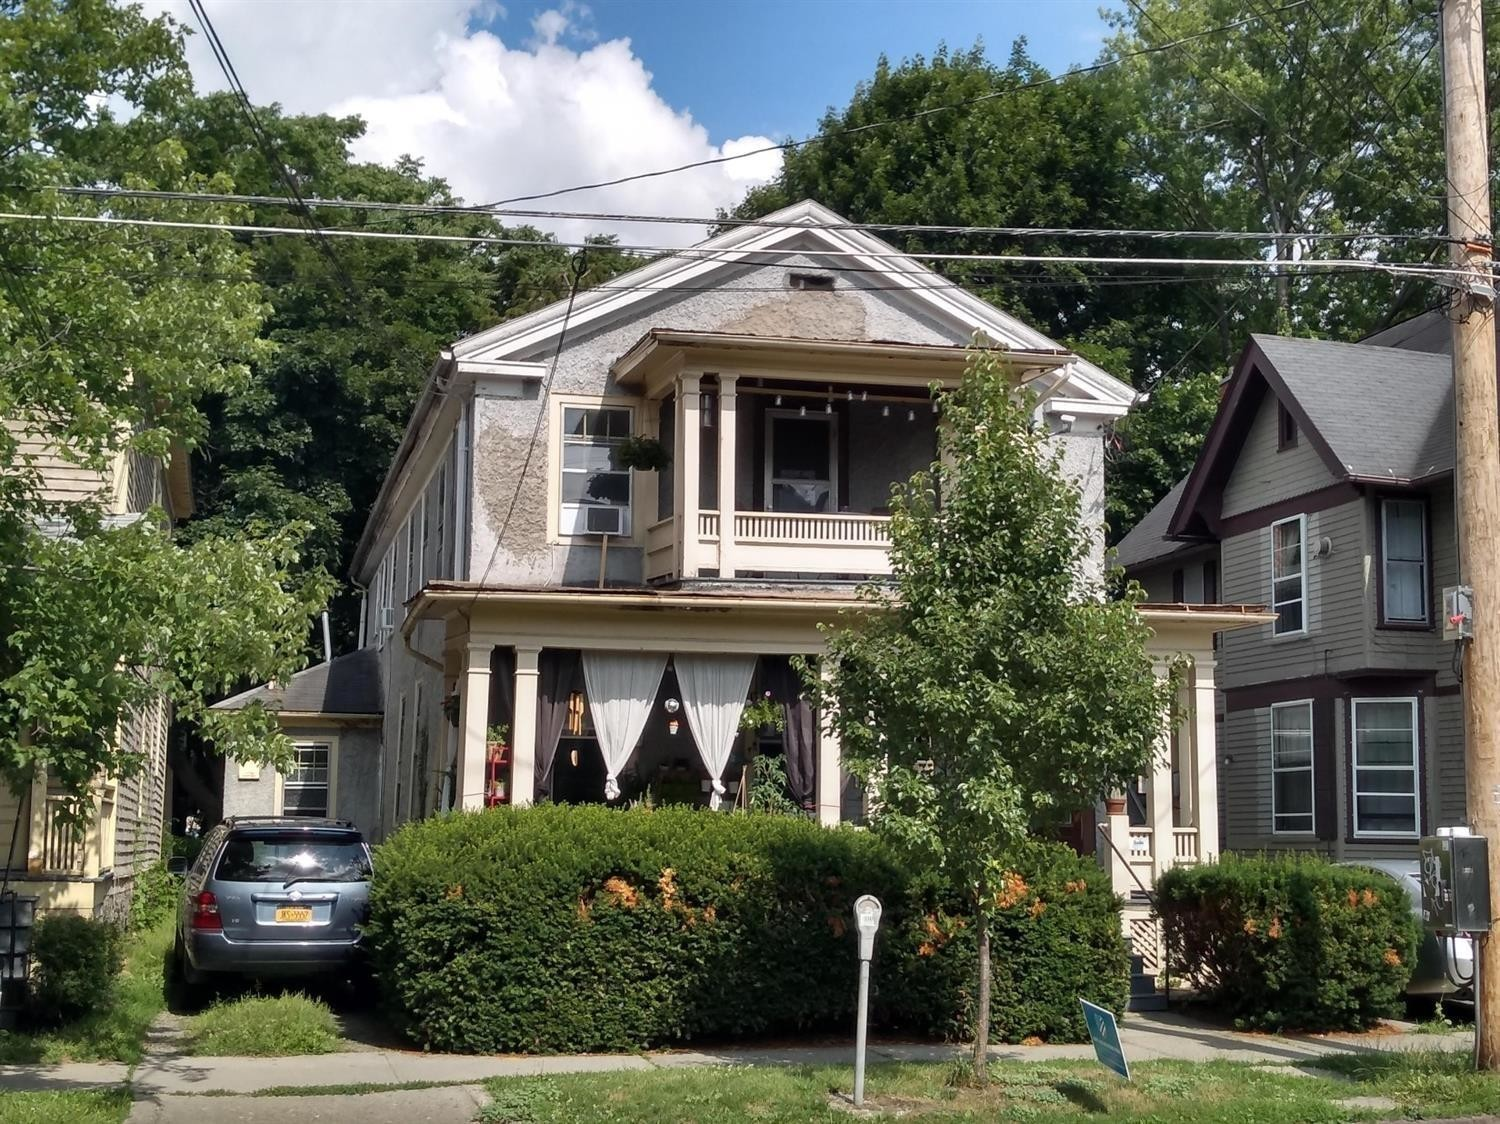 Multi-Family Home In Ithaca